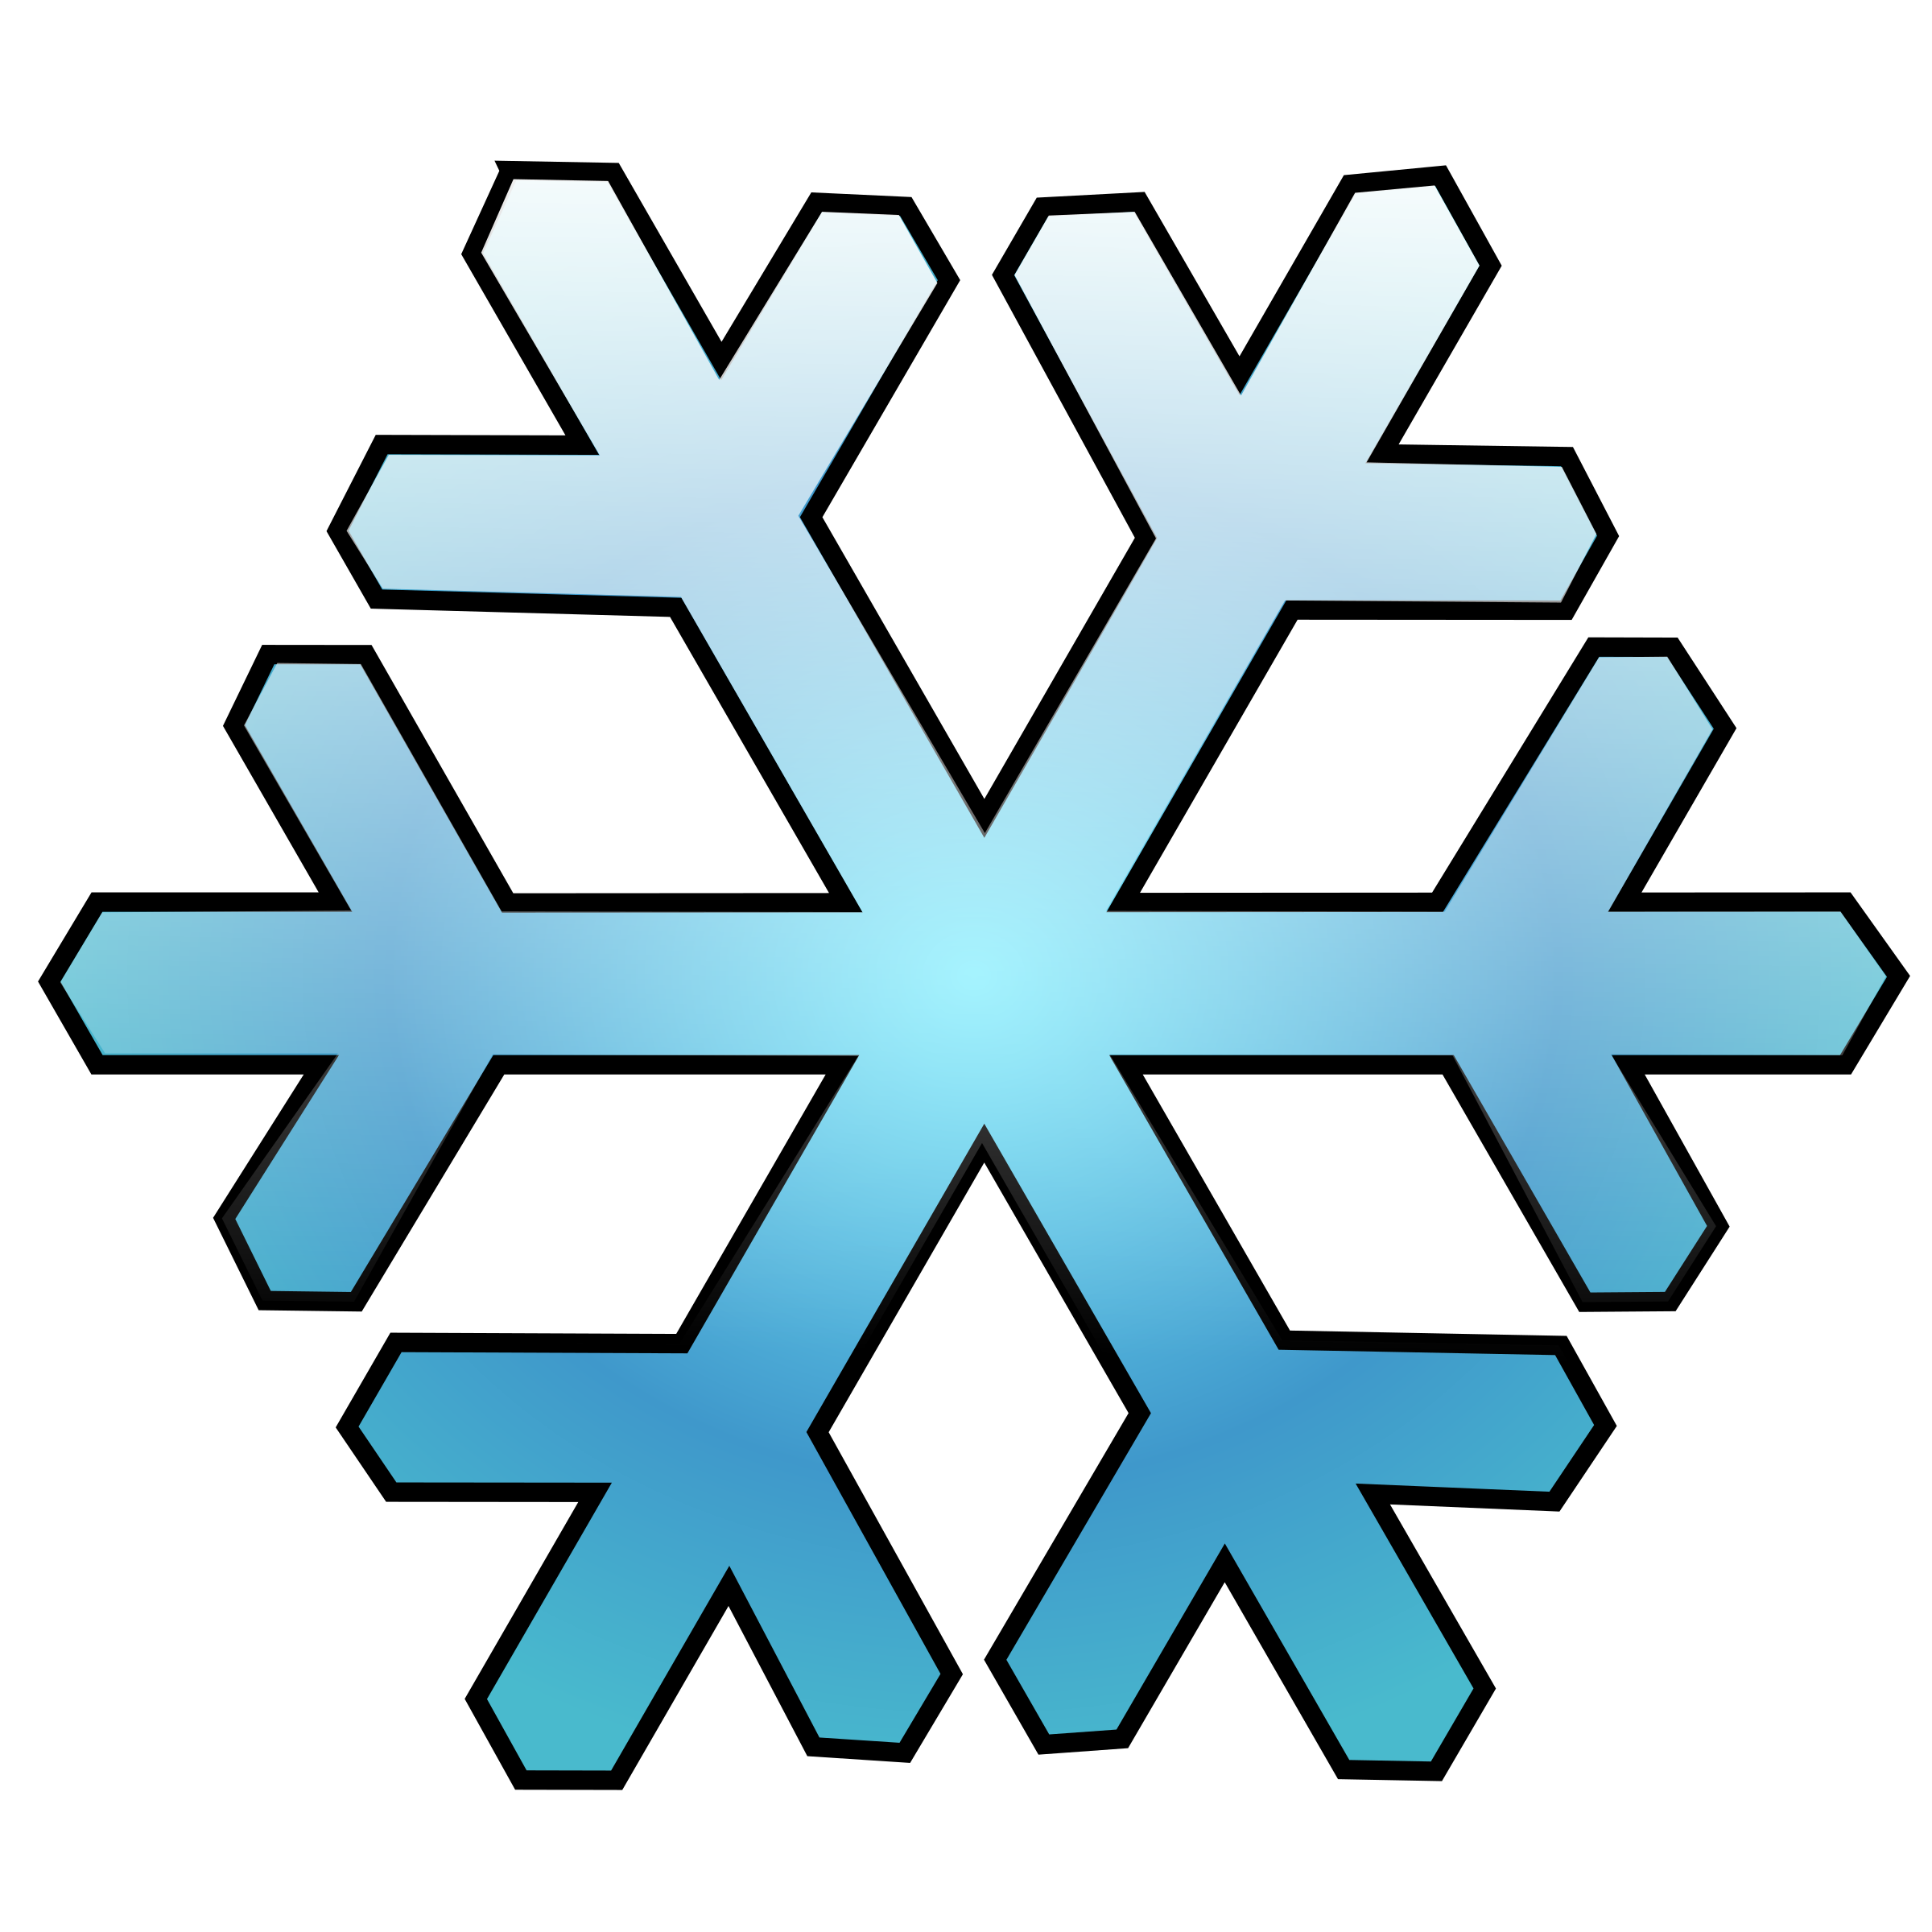 Snowflakes clipart cut out. Snowflake big image png